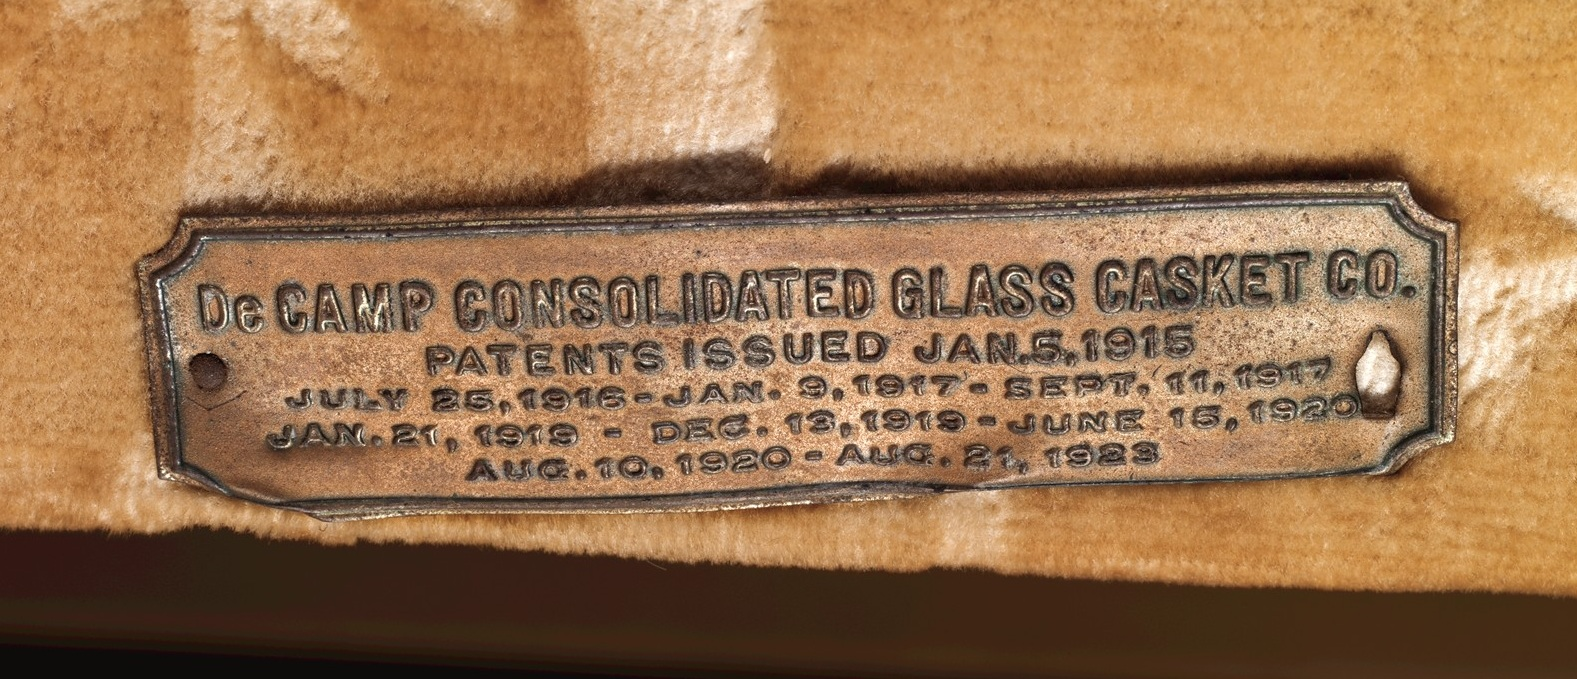 Patent Information Plate on CMoG Casket for DeCamp Consolidated Glass Casket Co., Factory